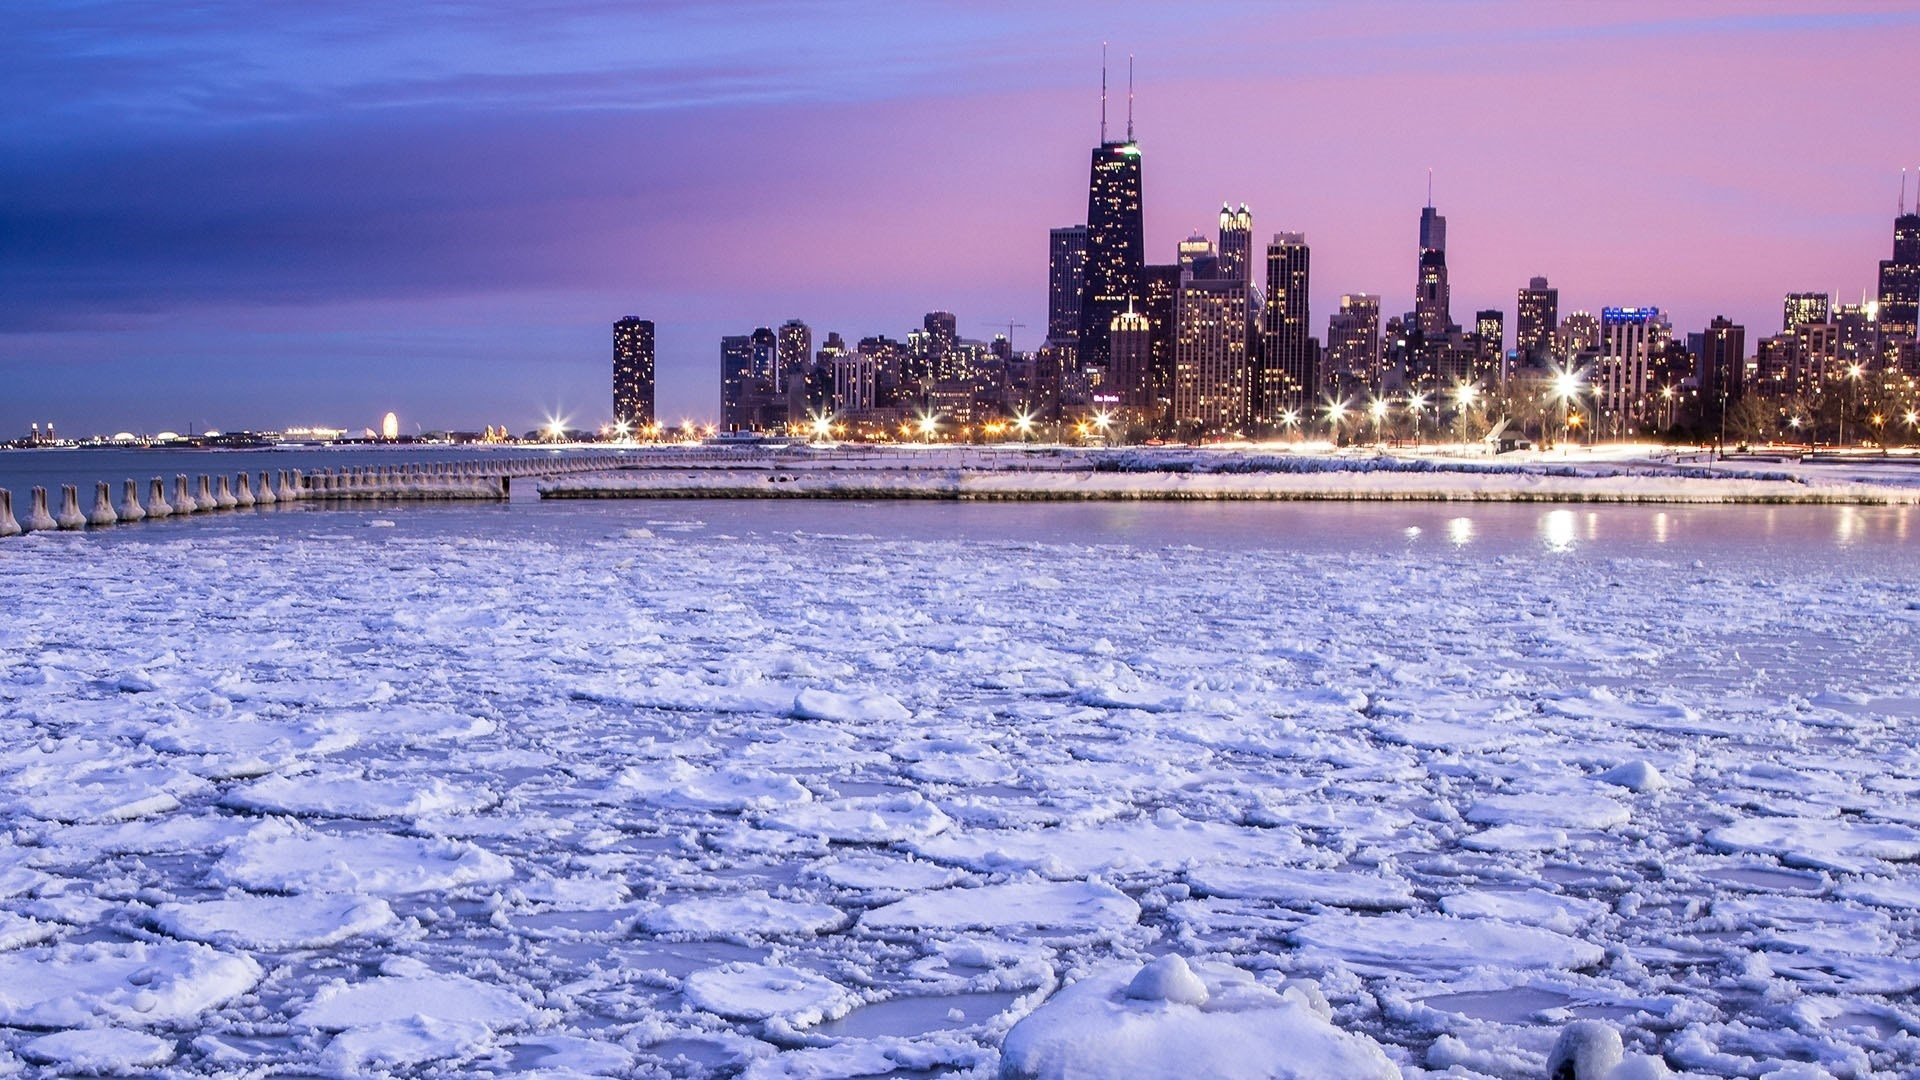 Chicago Skyline And Lake Michigan Hd Wallpaper Background Image 1920x1080 Id 1090676 Wallpaper Abyss